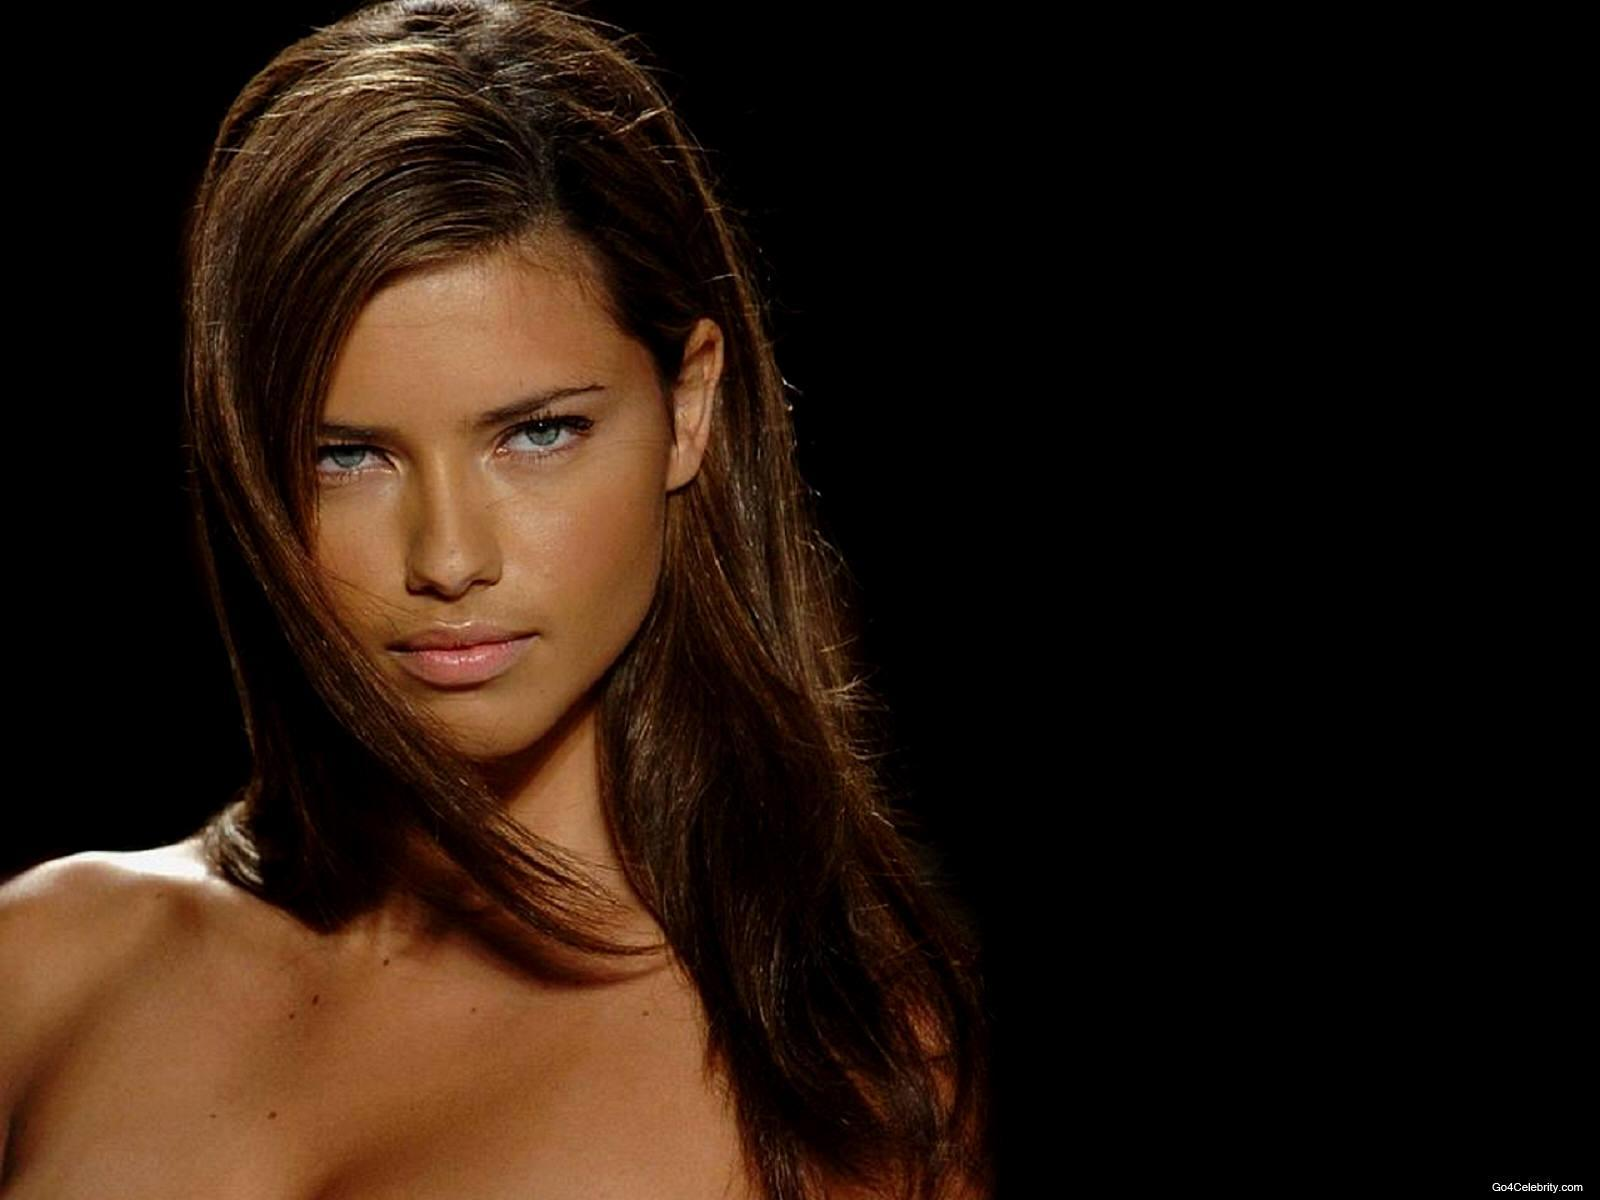 adriana lima photos - photo #4